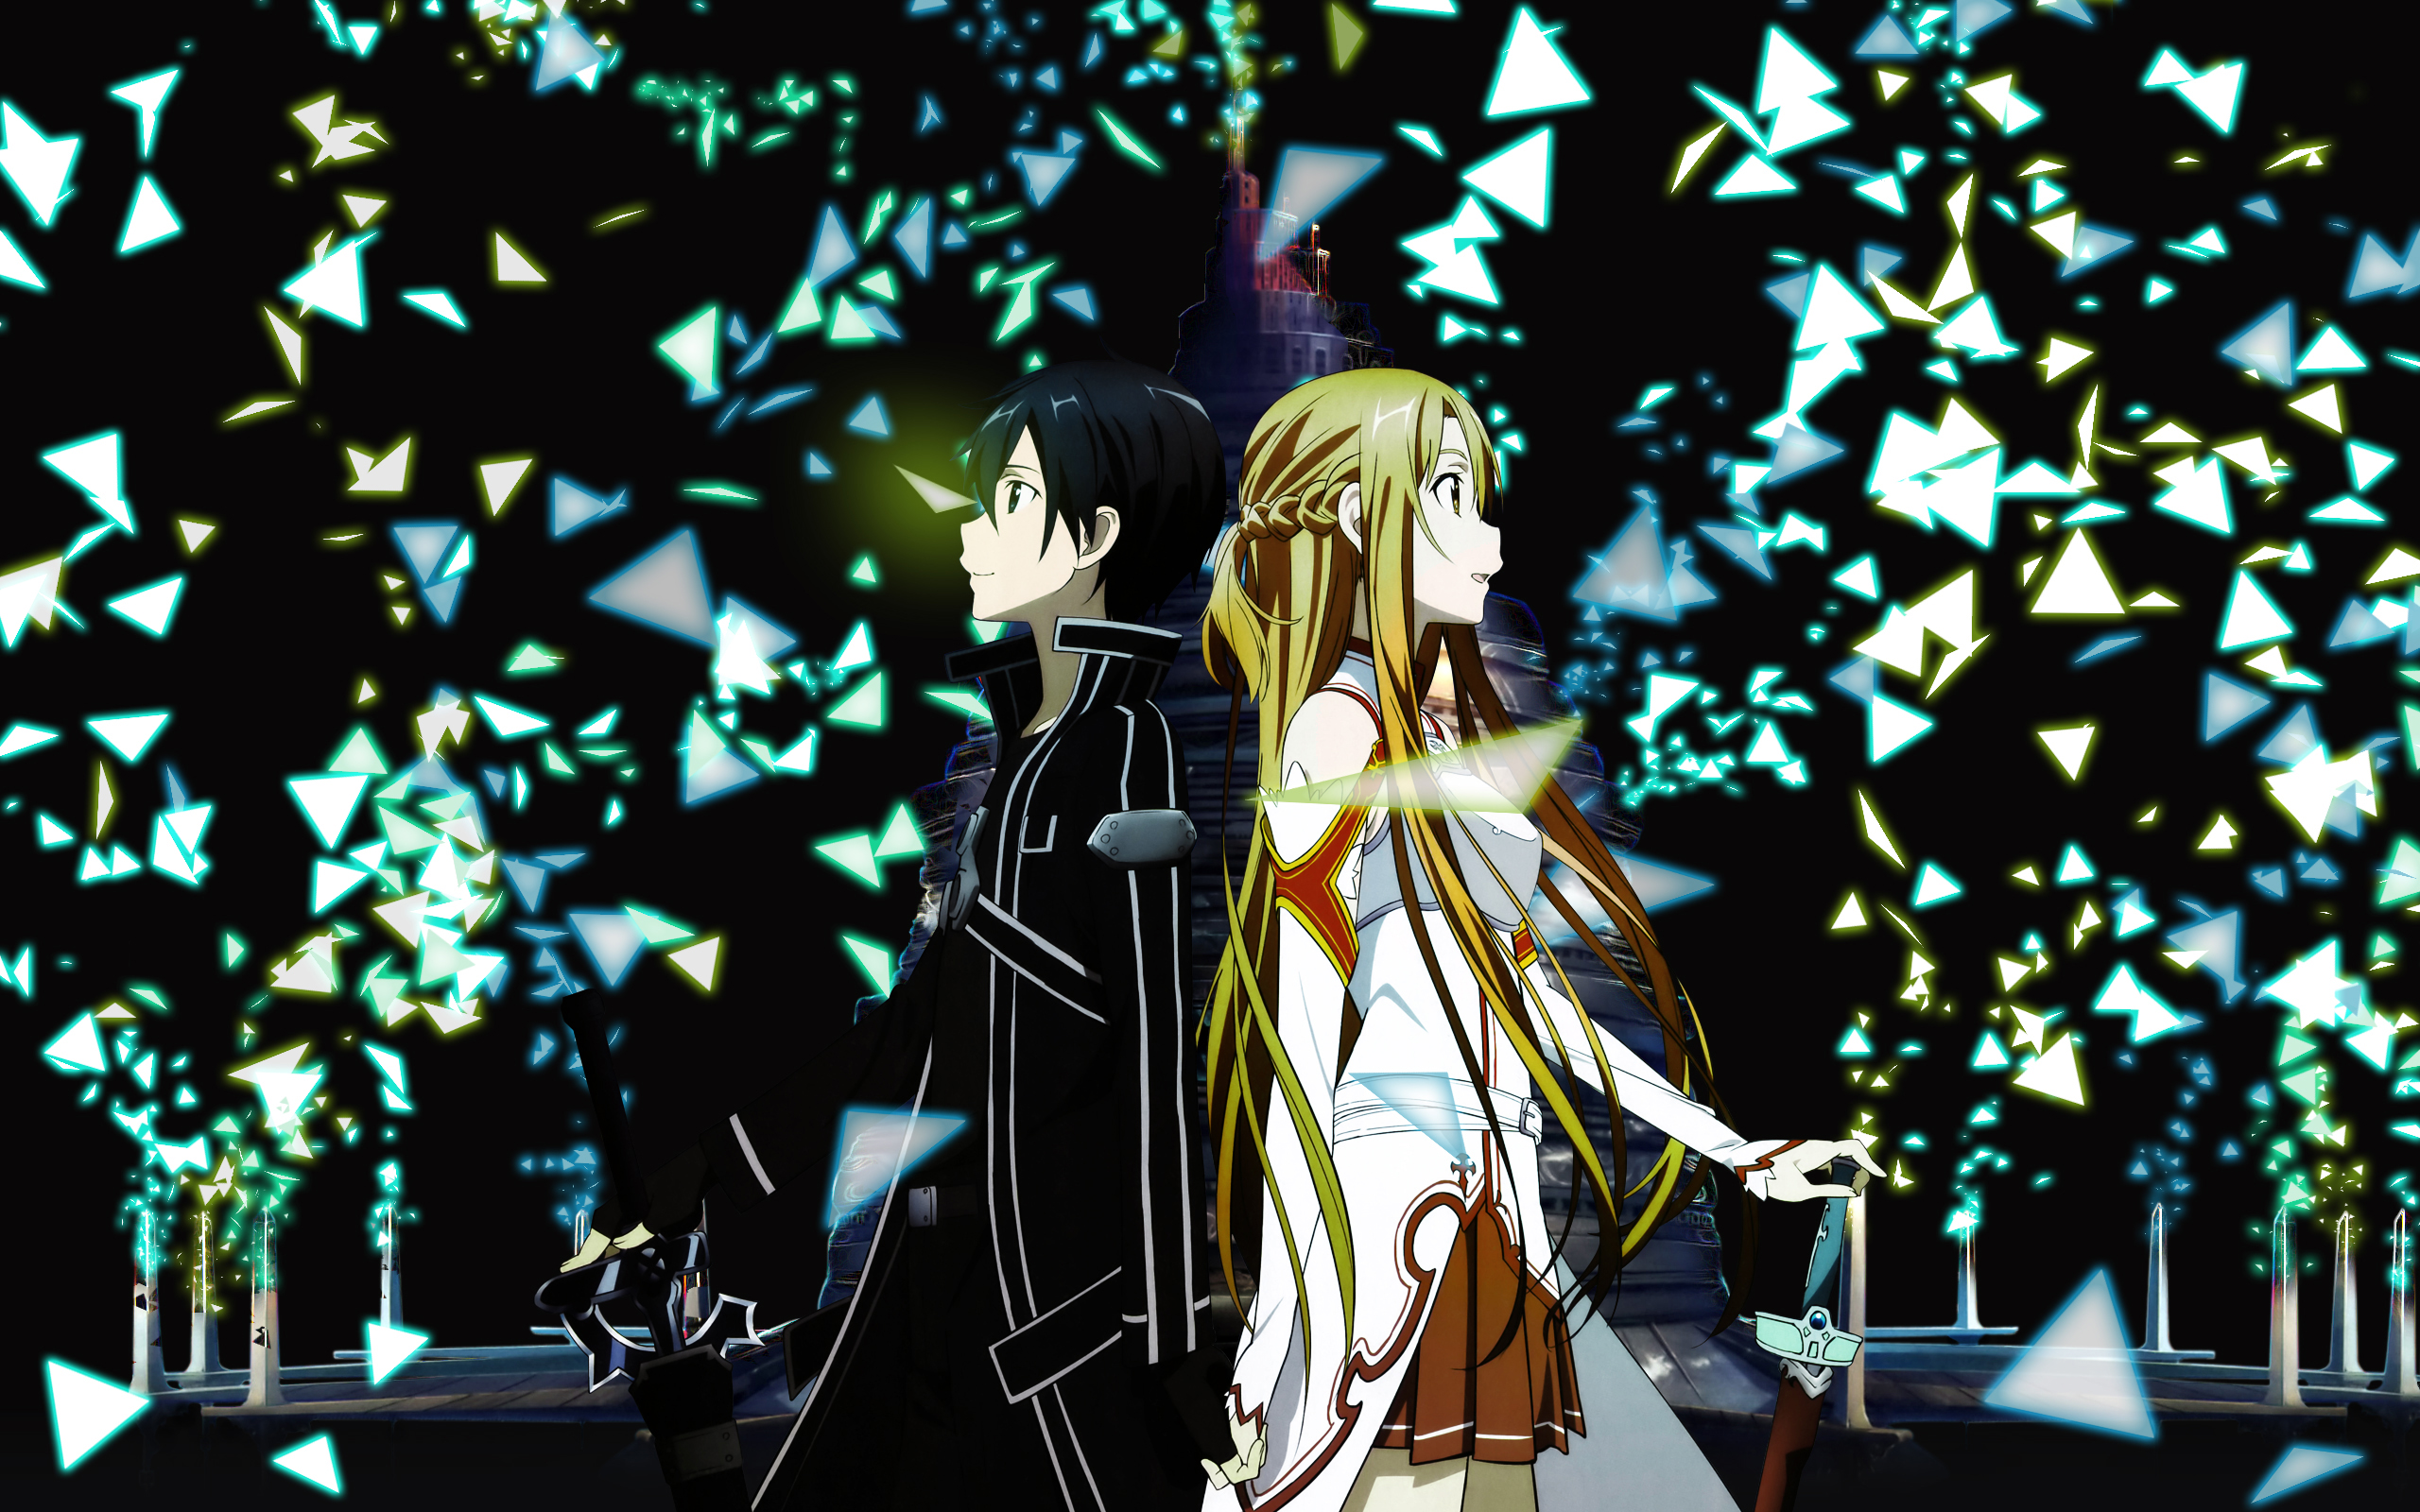 Download Wallpaper From Anime Sword Art Online With Tags Asuna